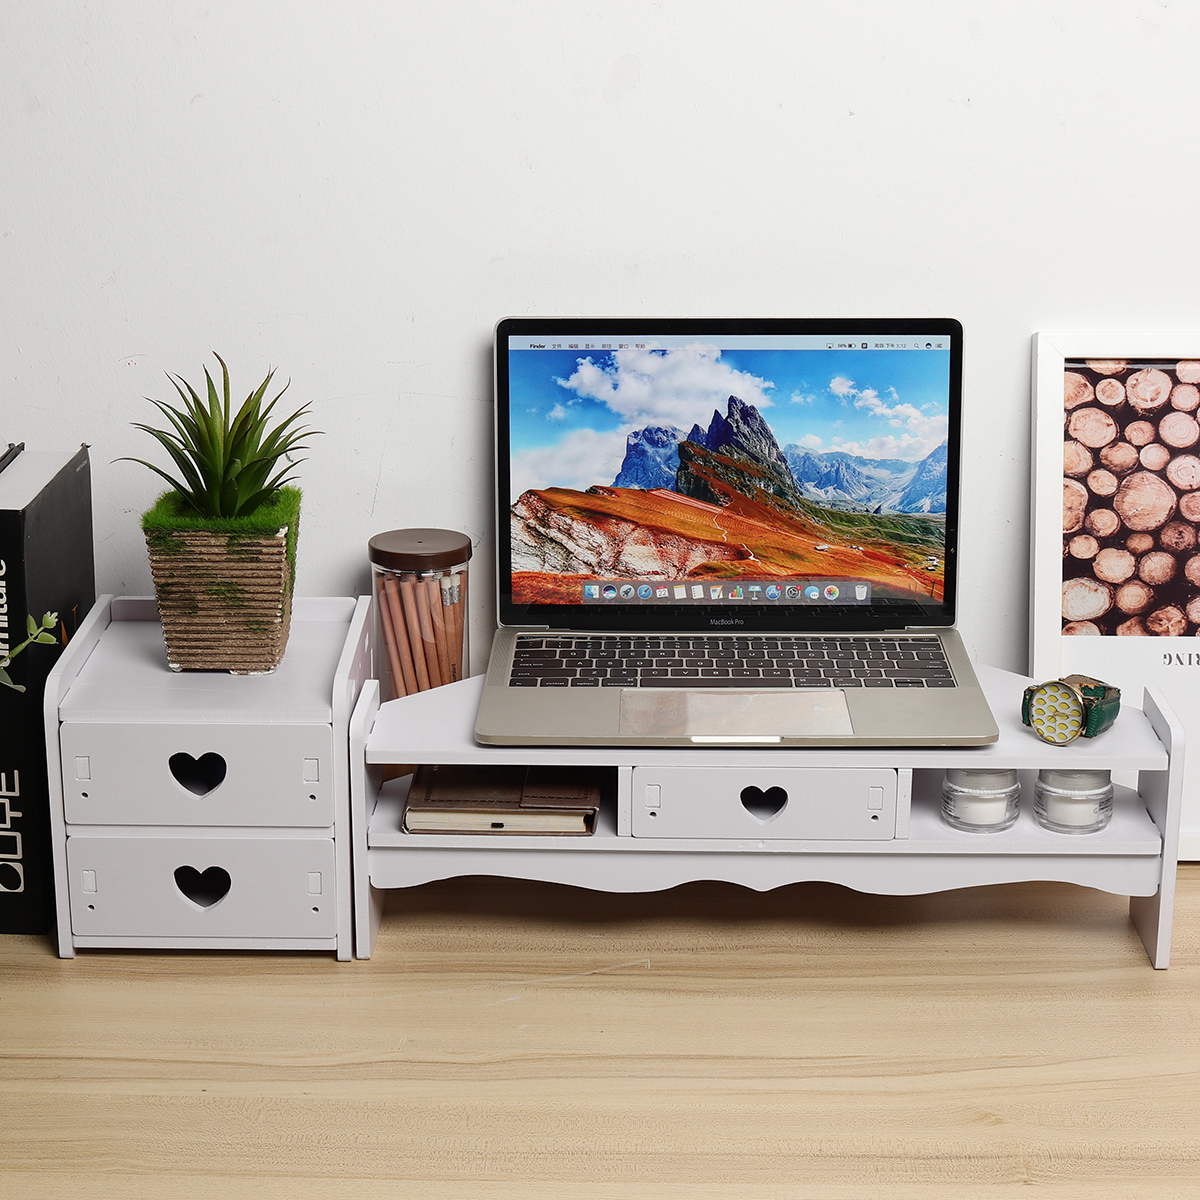 Home Office Computer Monitor Riser Laptop PC Stand Drawers Set Monitor Holder Screen Shelf Lapdesk Table Storage Organizer